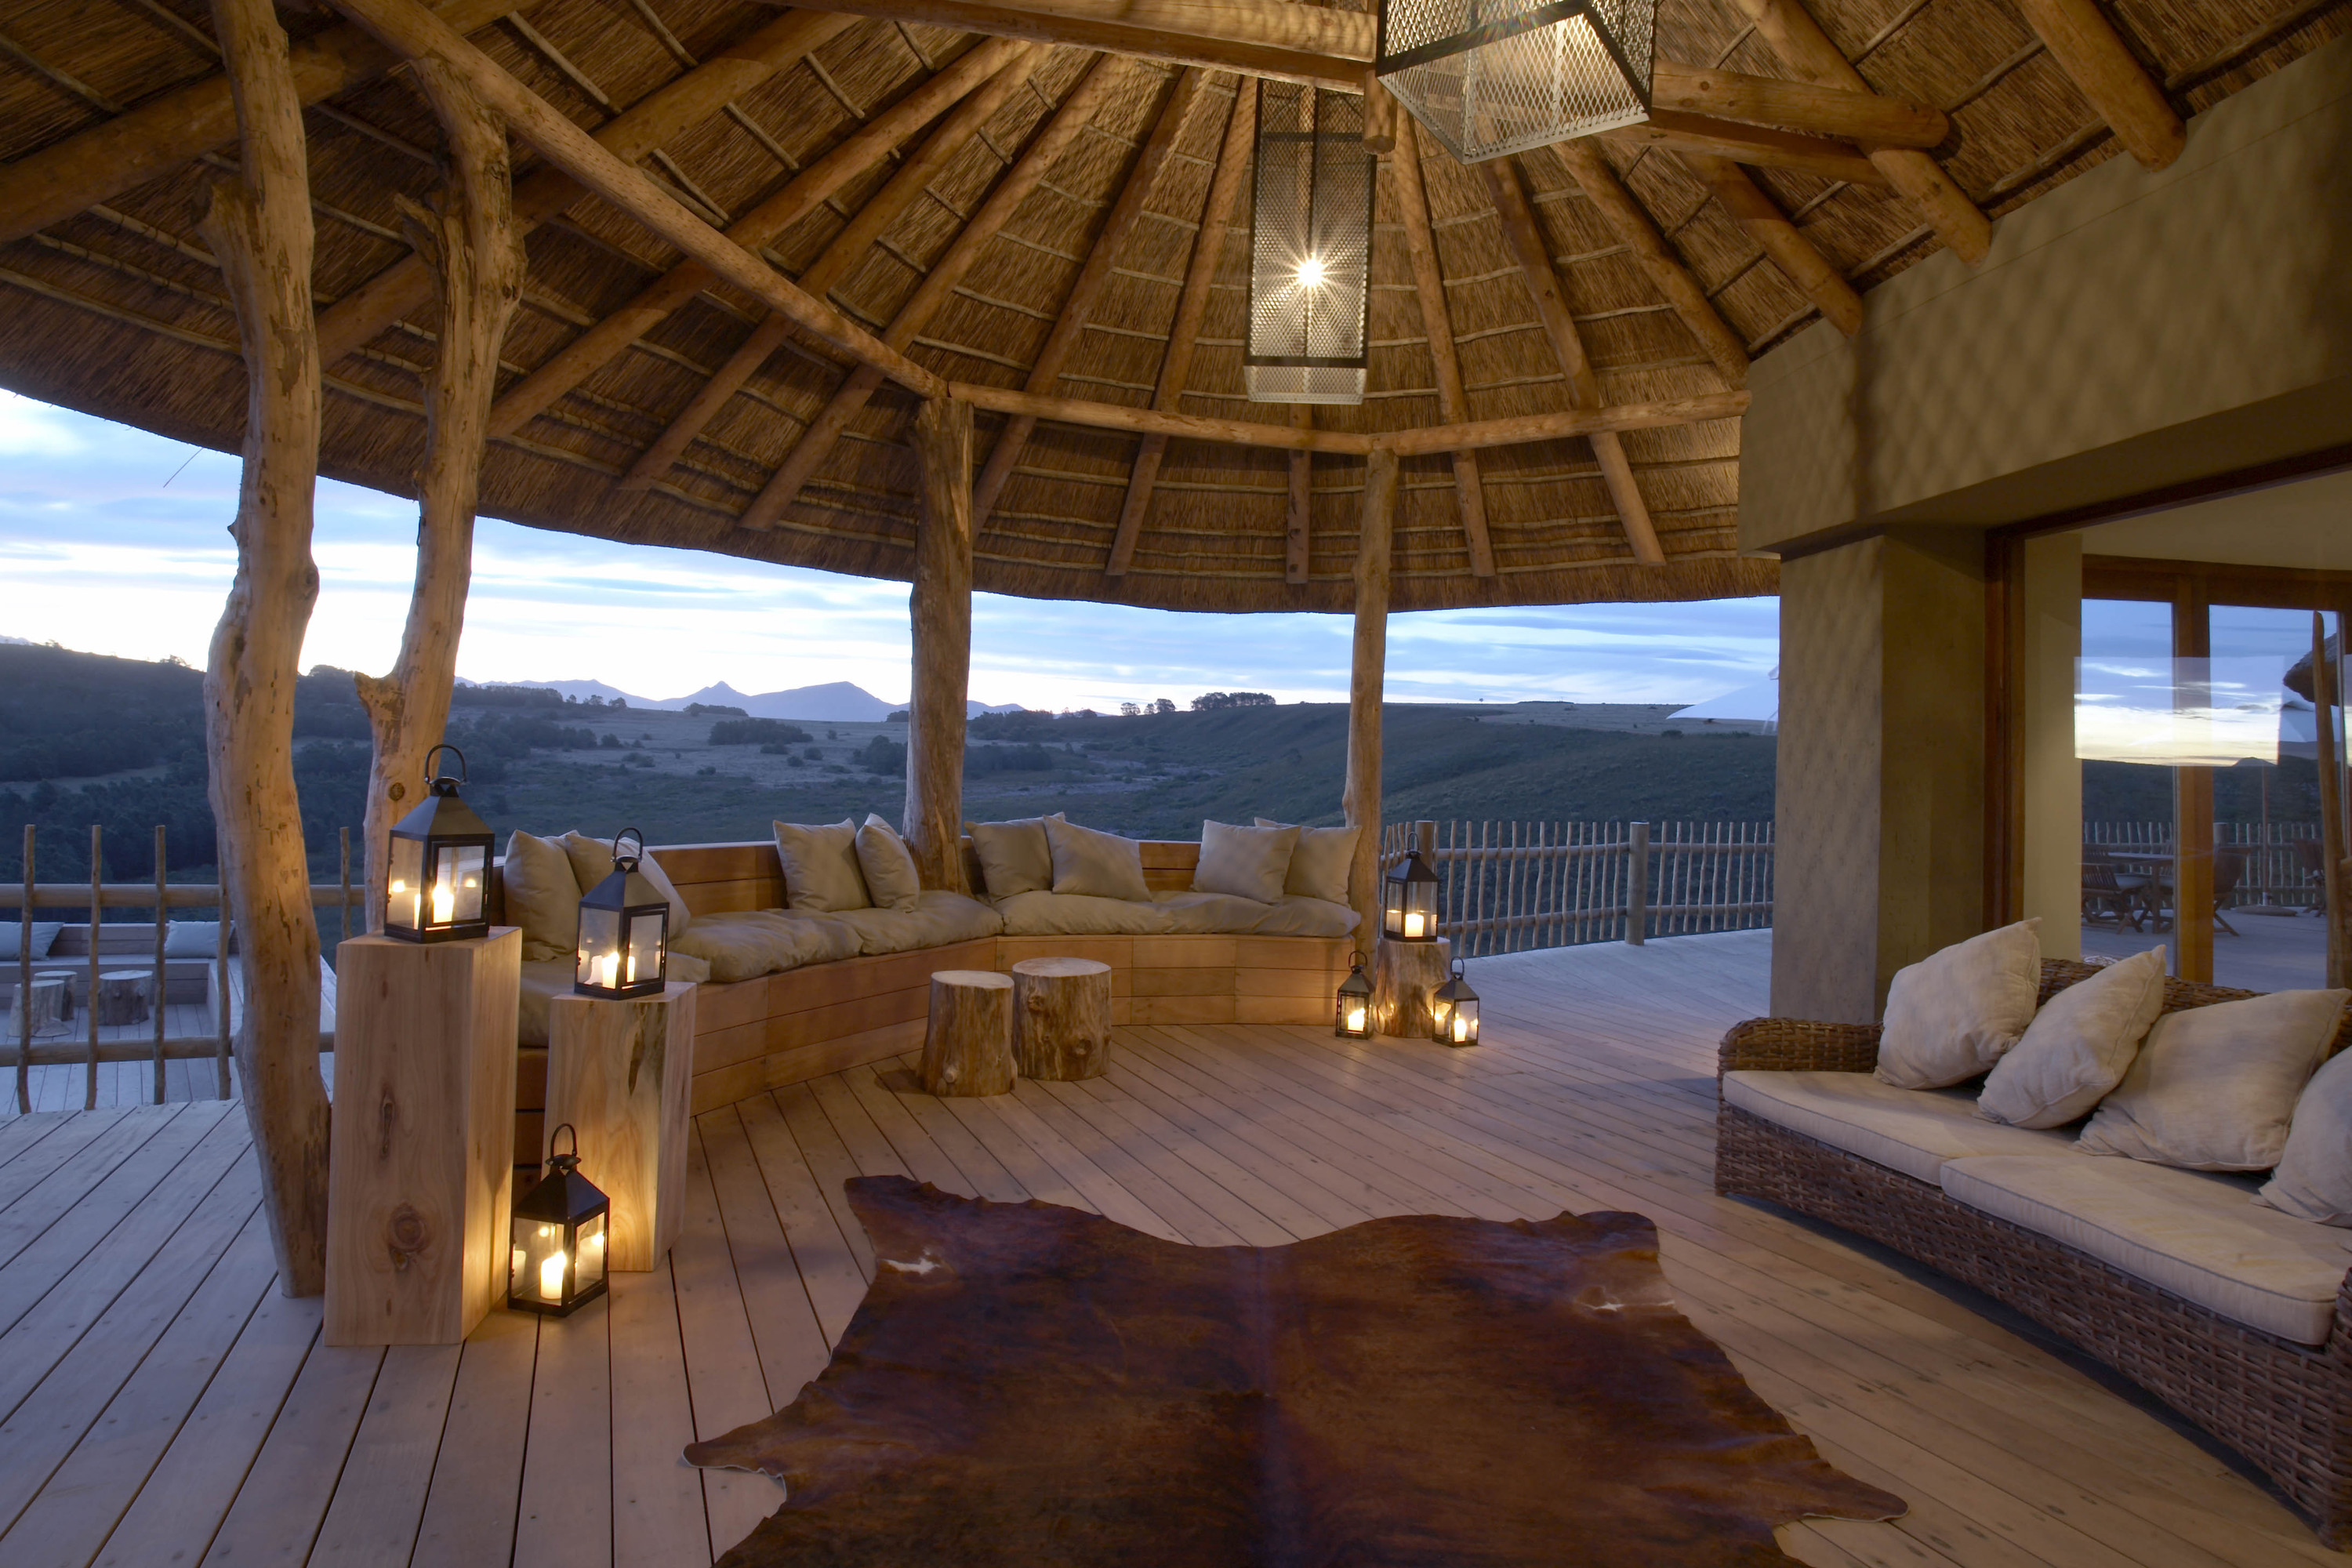 Top 5 glamping hotels around the world luxuriousprototype for Best hotel on earth